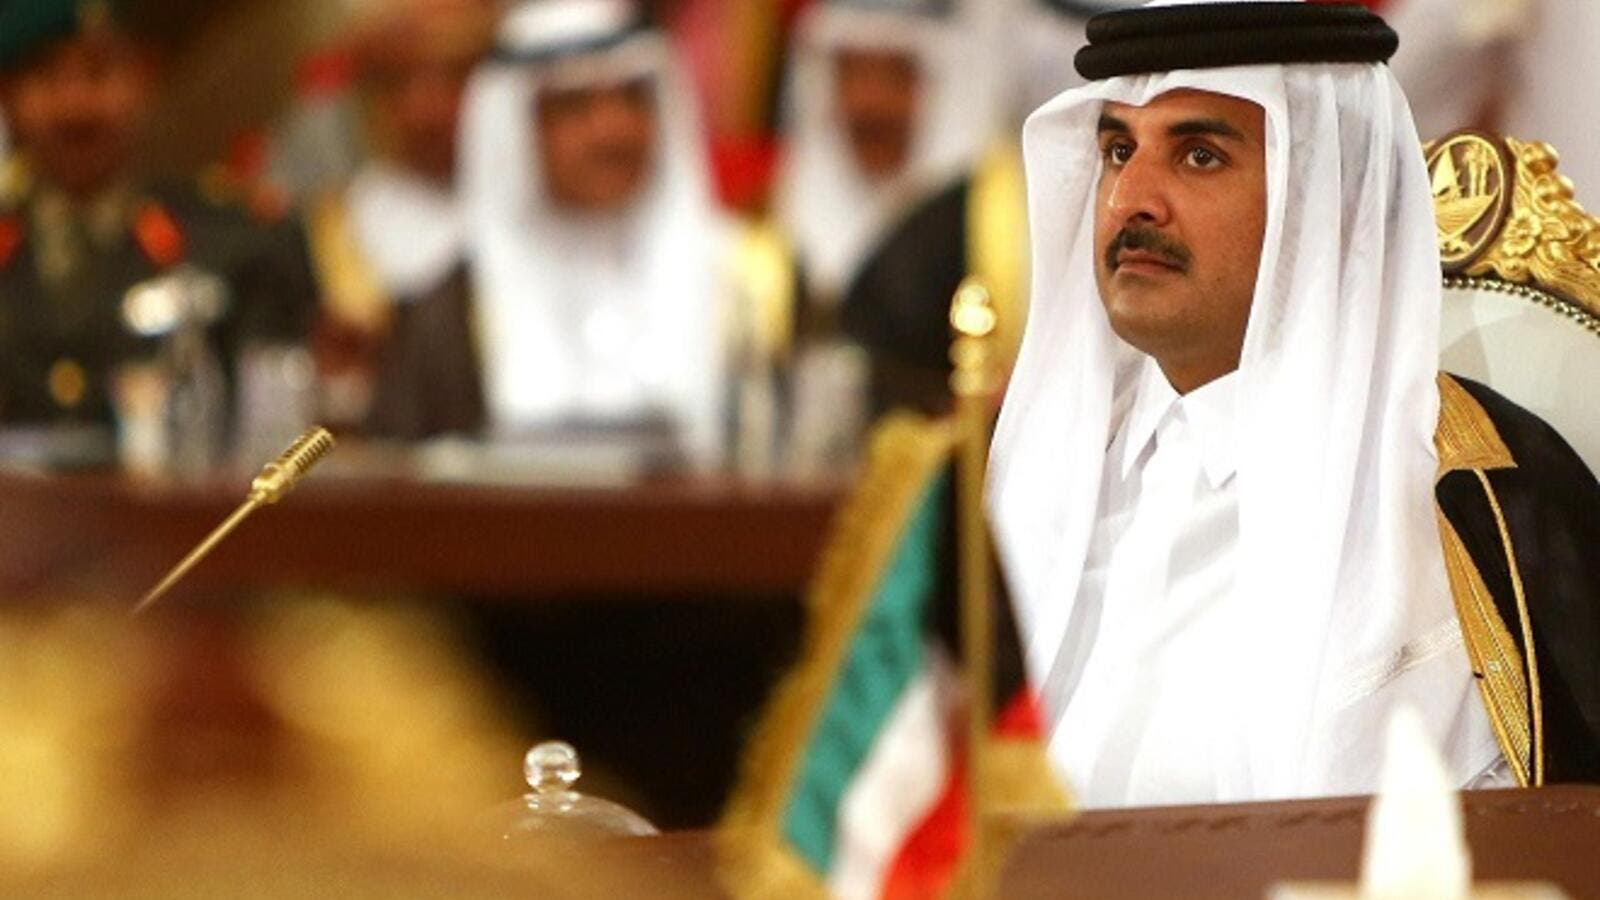 Qatar said Wednesday it had begun an inquiry into an unprecedented security breach by hackers who posted fake news stories attributed to its ruler on highly sensitive regional political issues. (AFP/ Marwan Naamani)